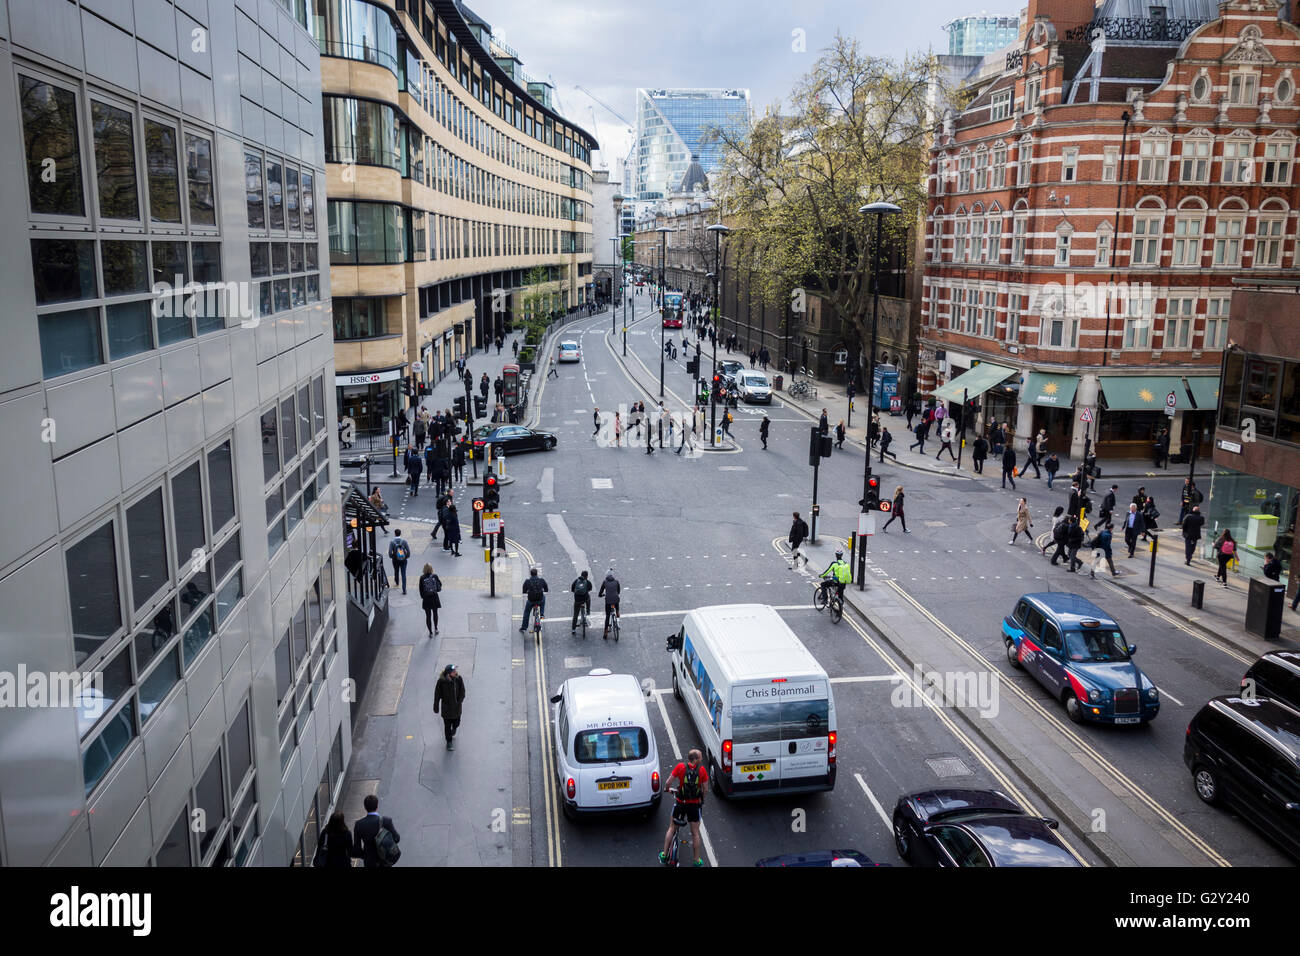 Road junction on Wormwood Street, City of London, UK - Stock Image